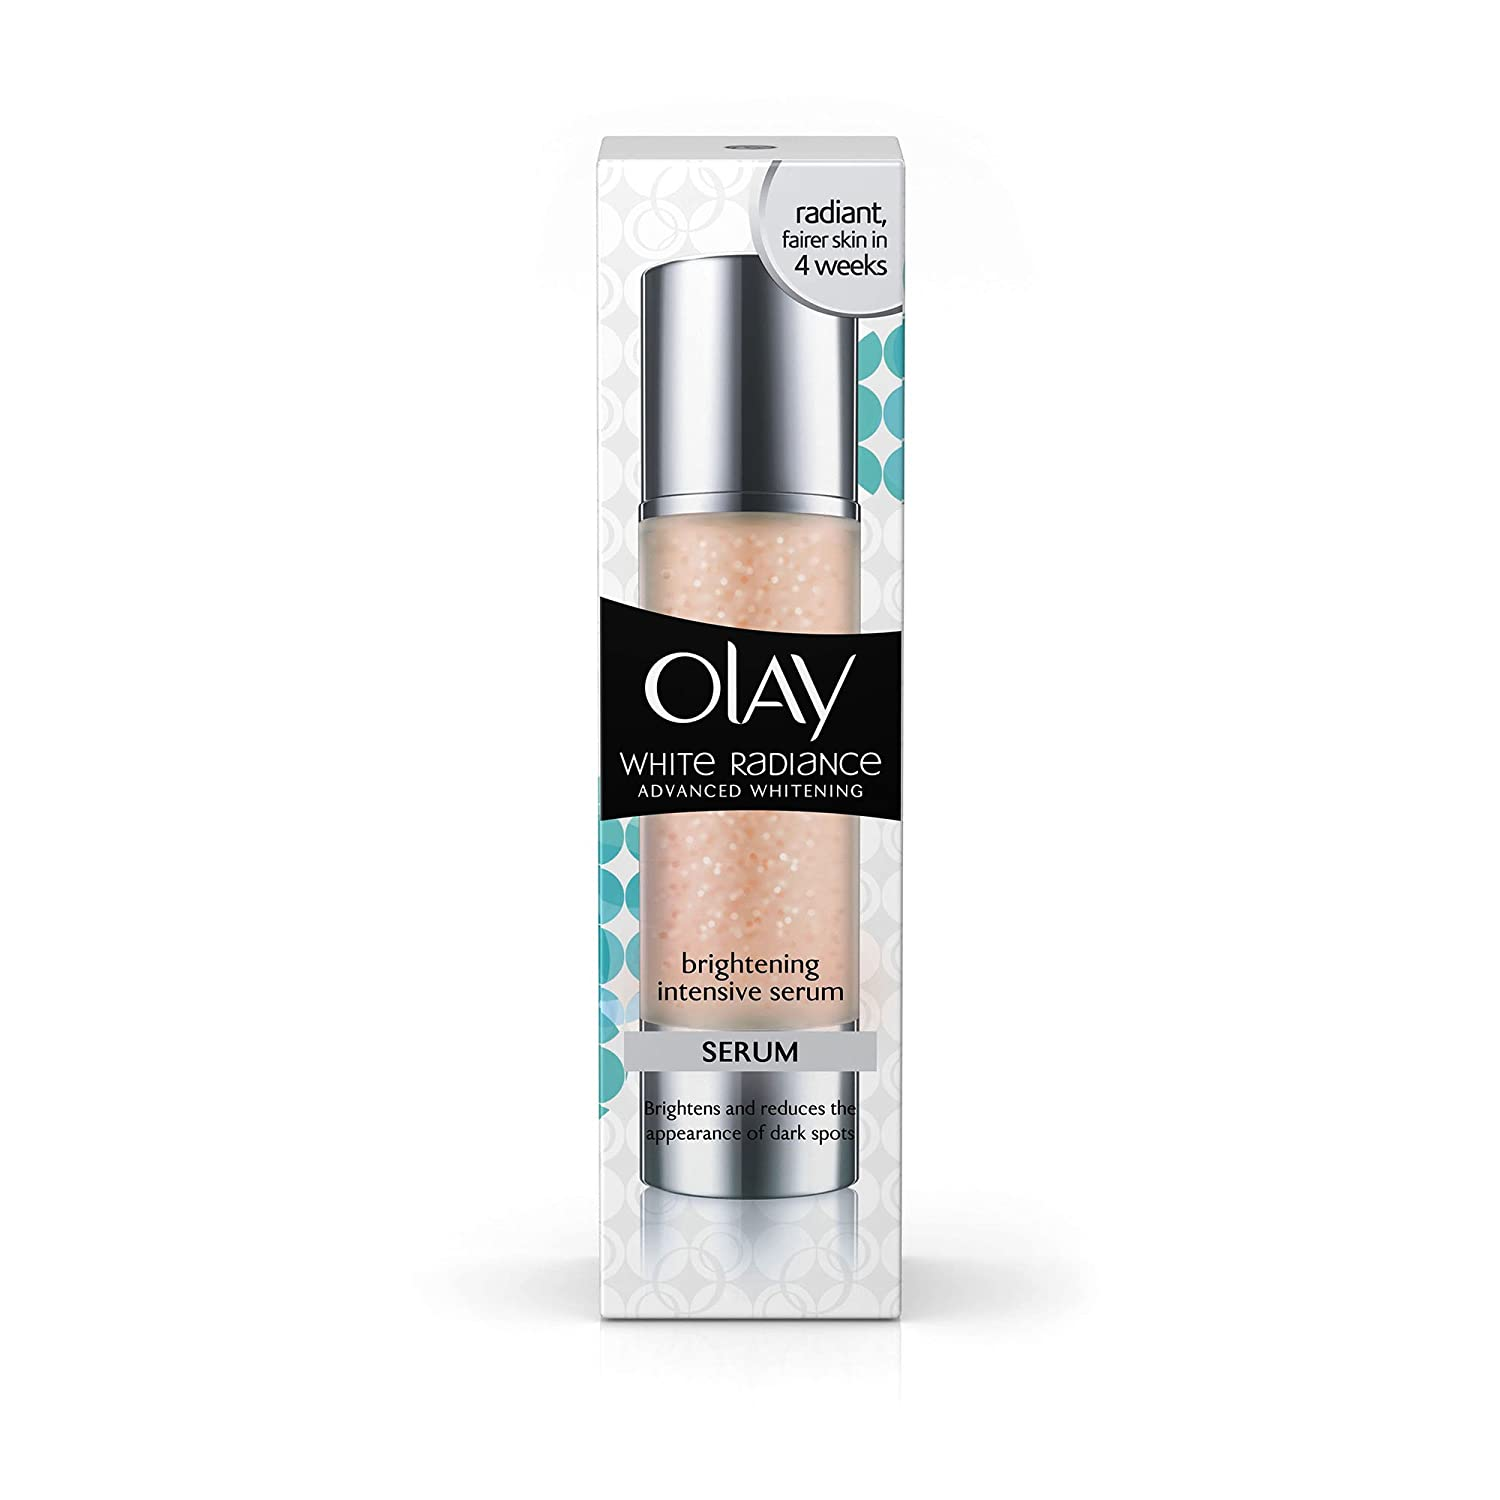 Olay White Radiance Brightening Intensive Serum-0